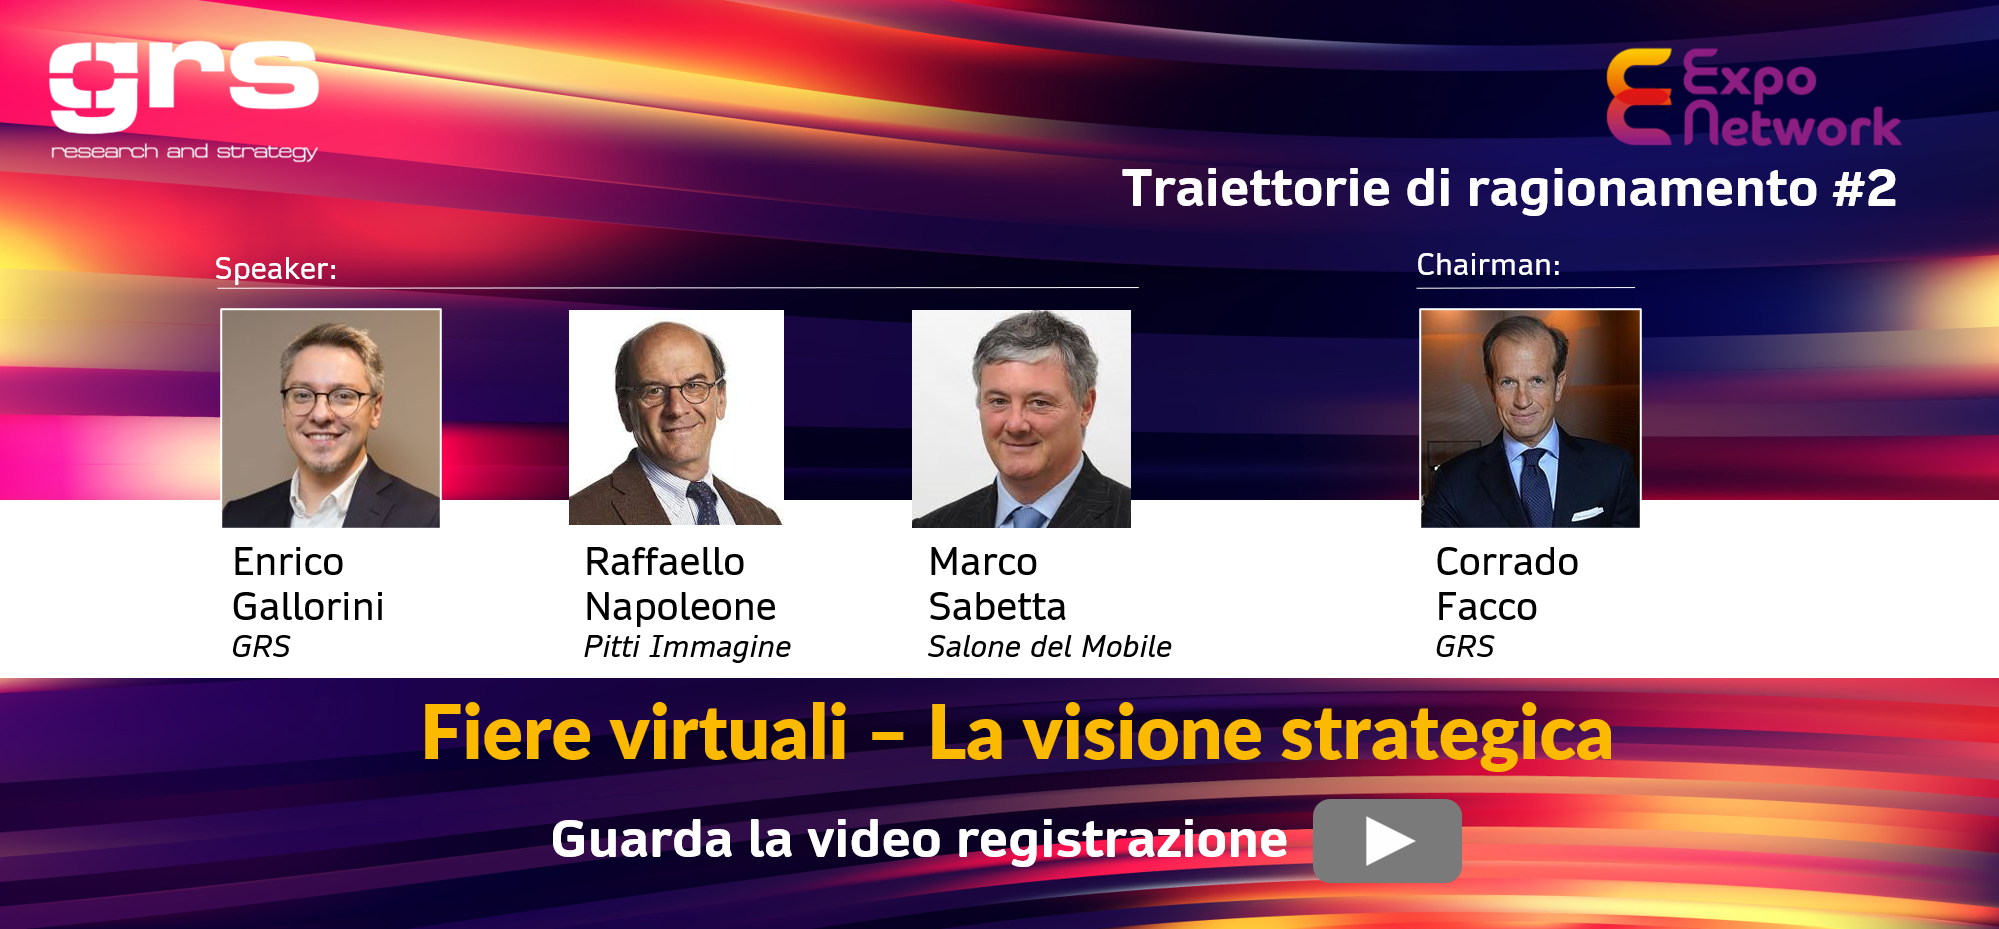 La visione strategica delle fiere virtuali: conclusioni sul web meeting